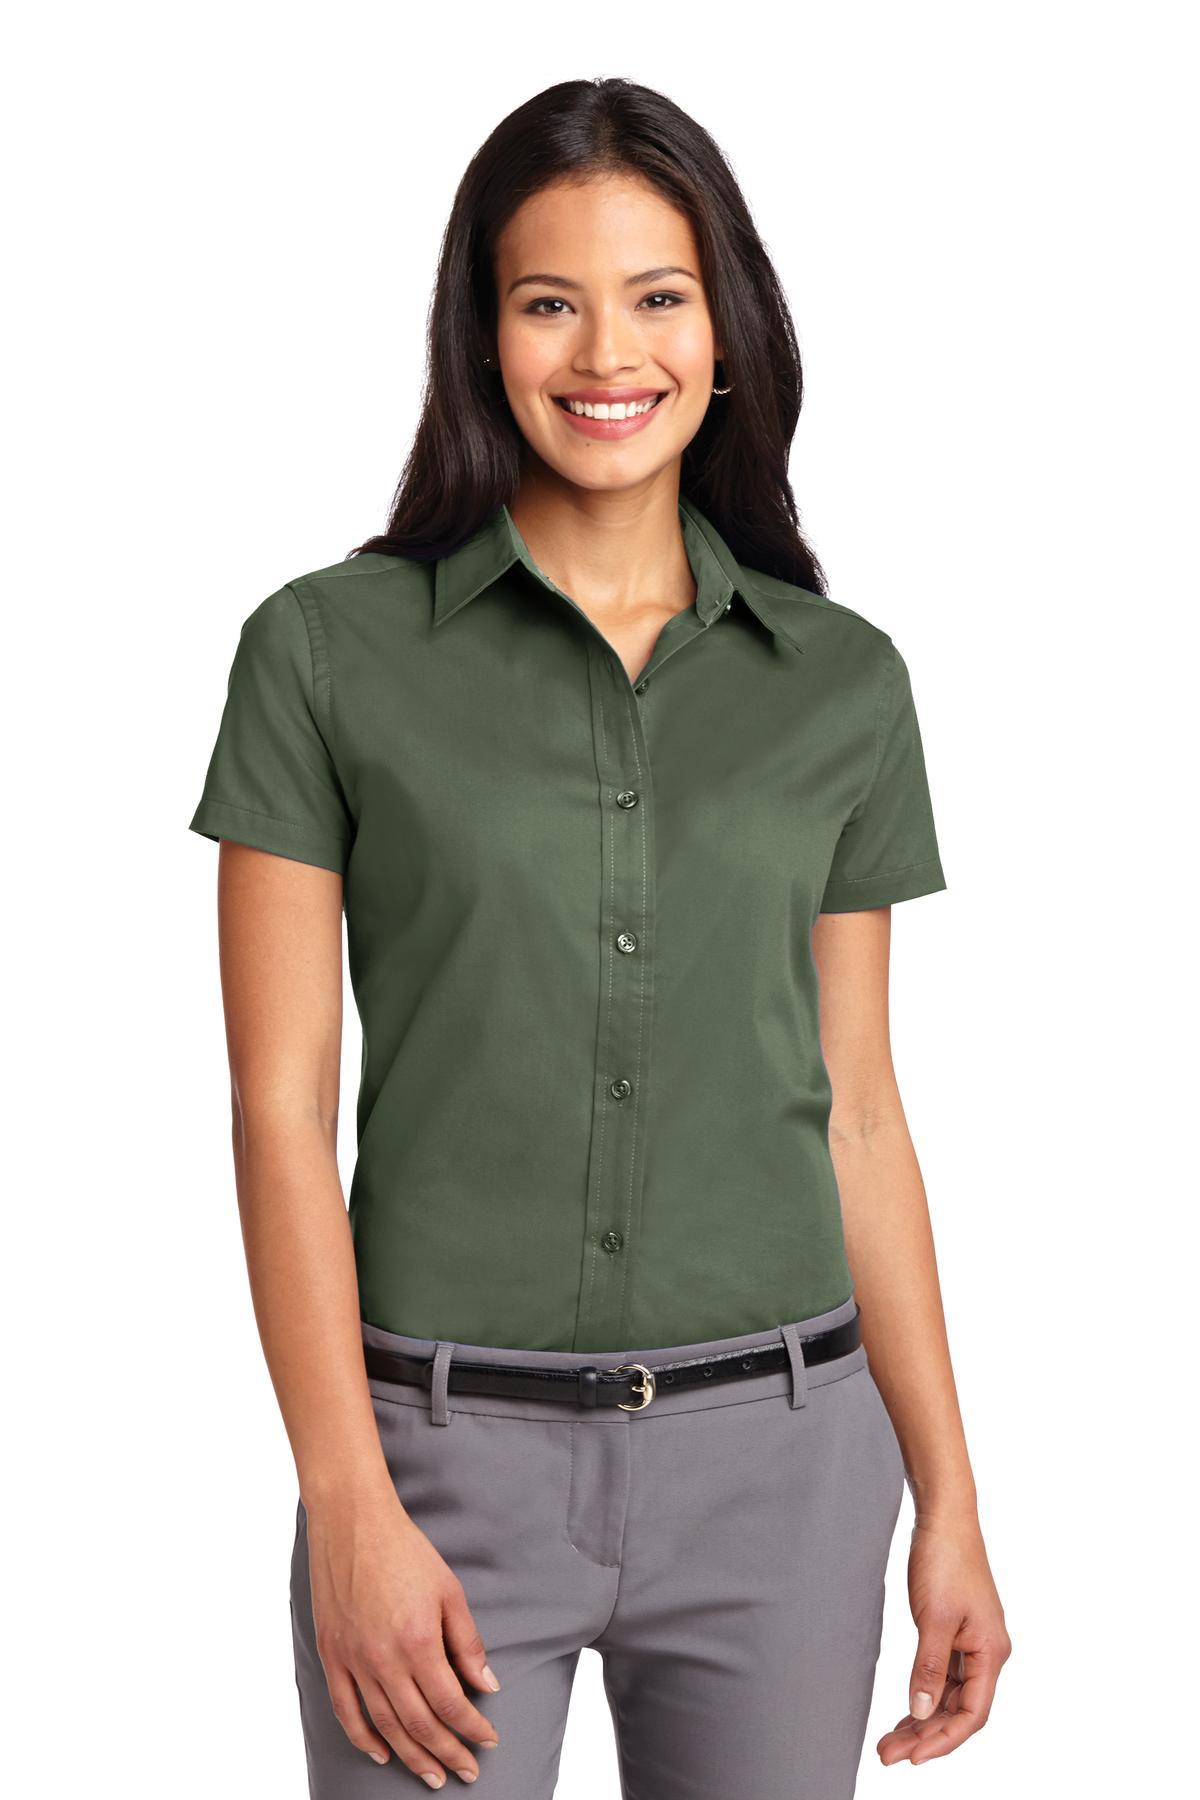 Port Authority ®  Ladies Short Sleeve Easy Care  Shirt.  L508 - Clover Green